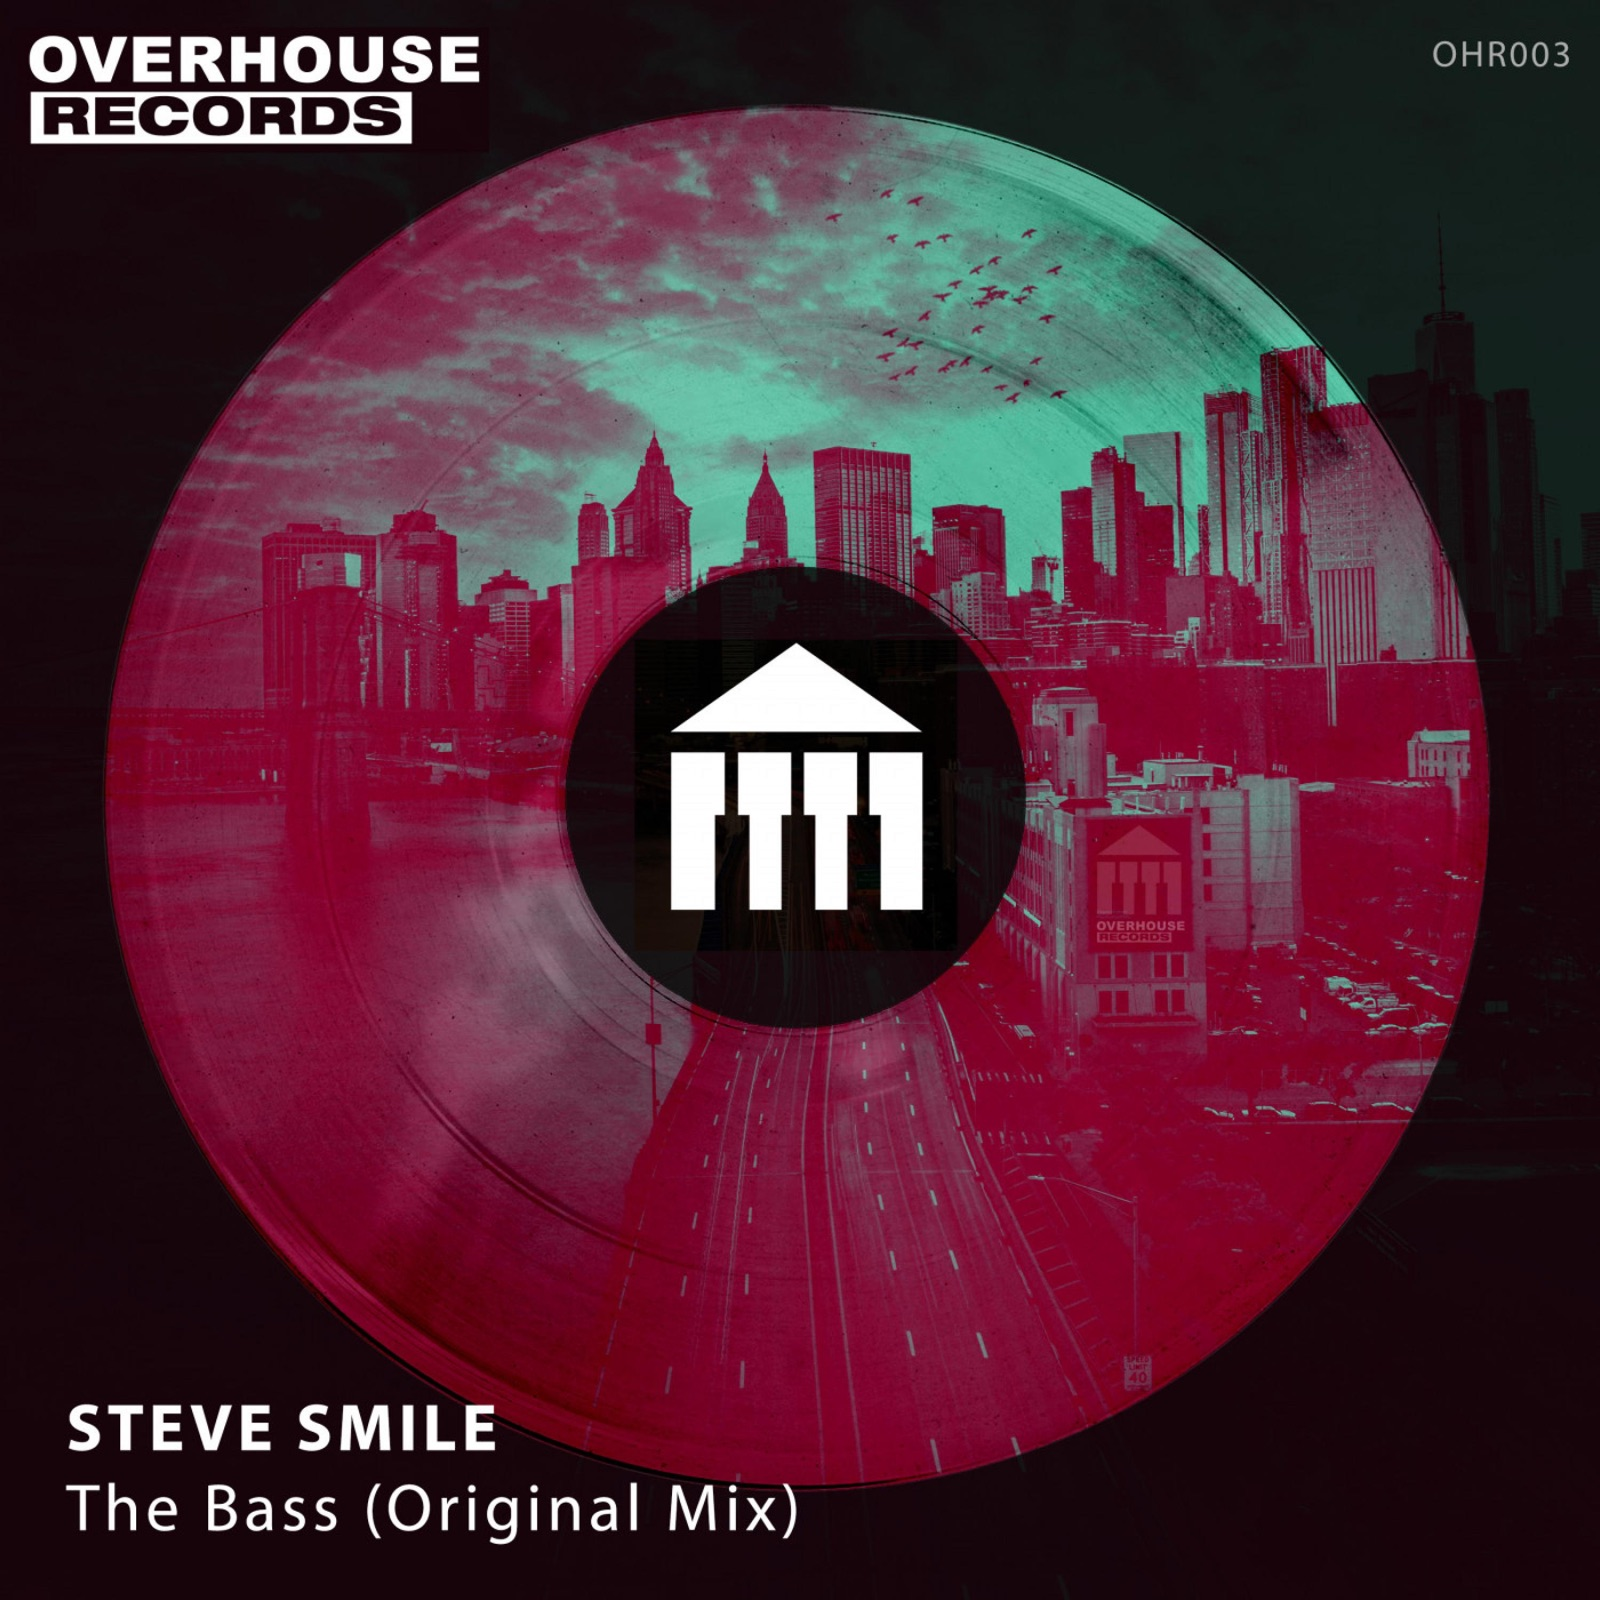 Steve Smile - The Bass (The Bass - Single)